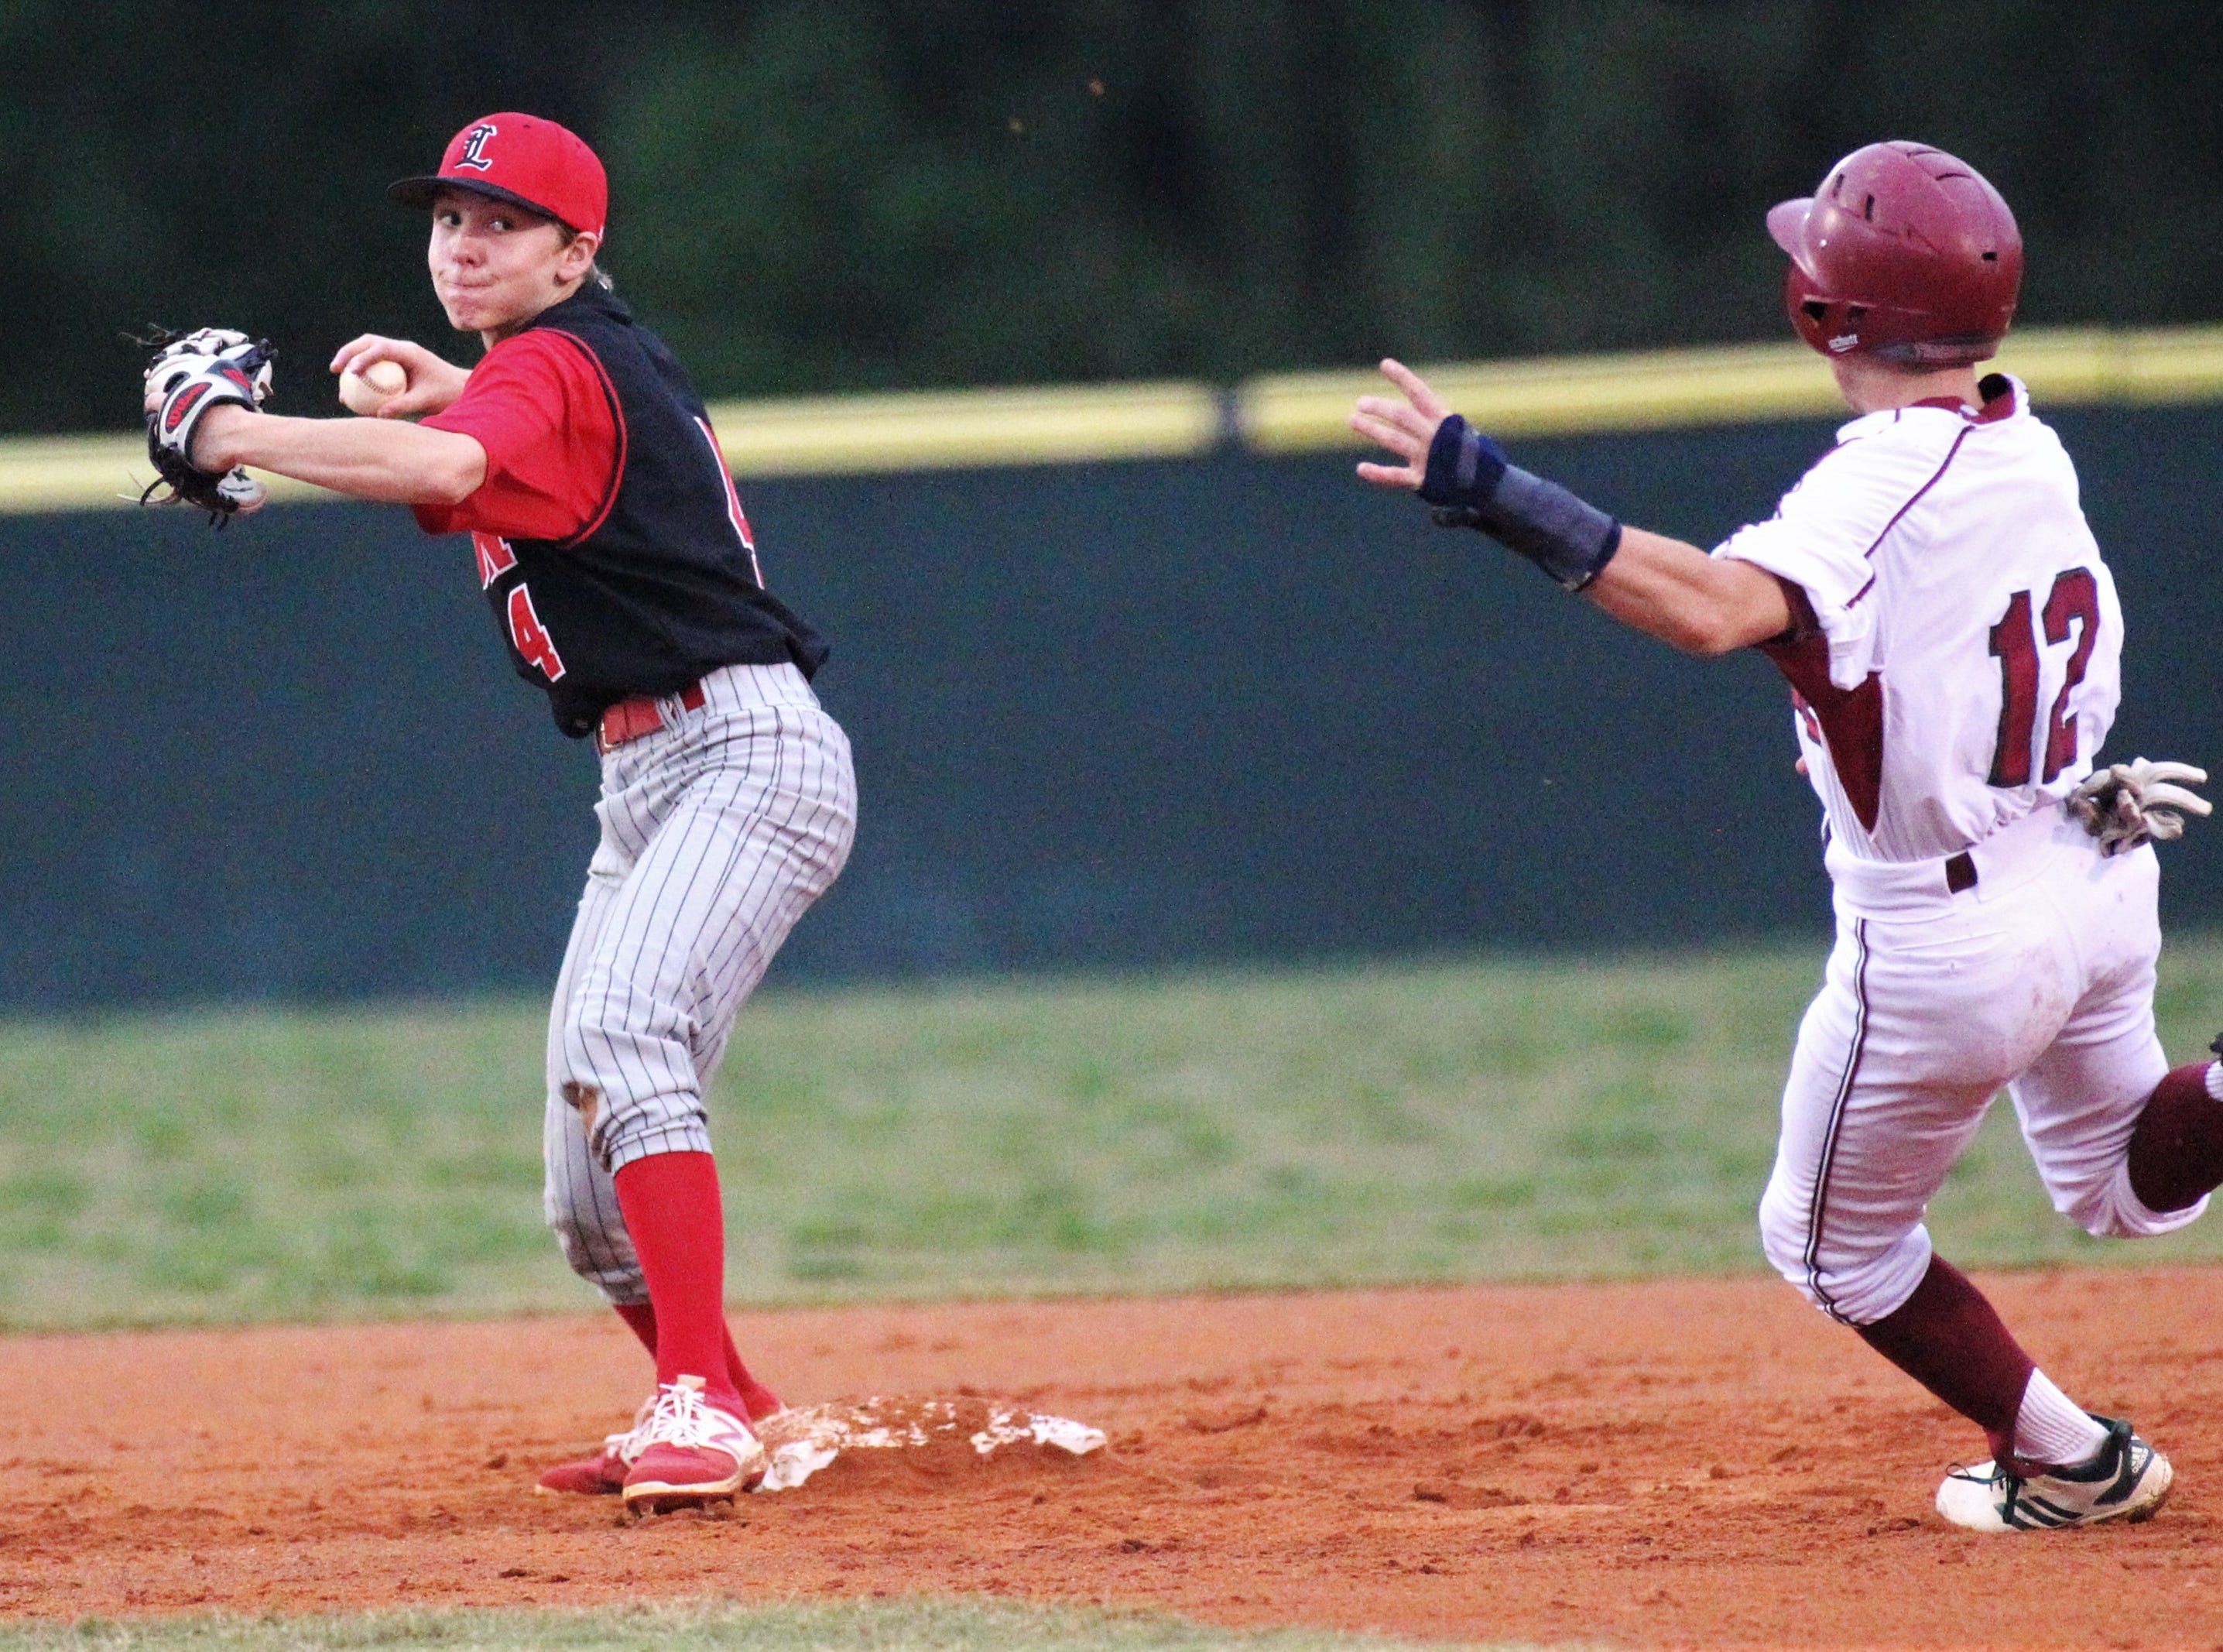 Leon second baseman Andrew Penney turns a double play as Chiles freshman Jaxson West slides in as Chiles won an 11-6 home game against Leon on Friday, April 5, 2019, to force a season split. The Lions won 3-0 earlier in the week.